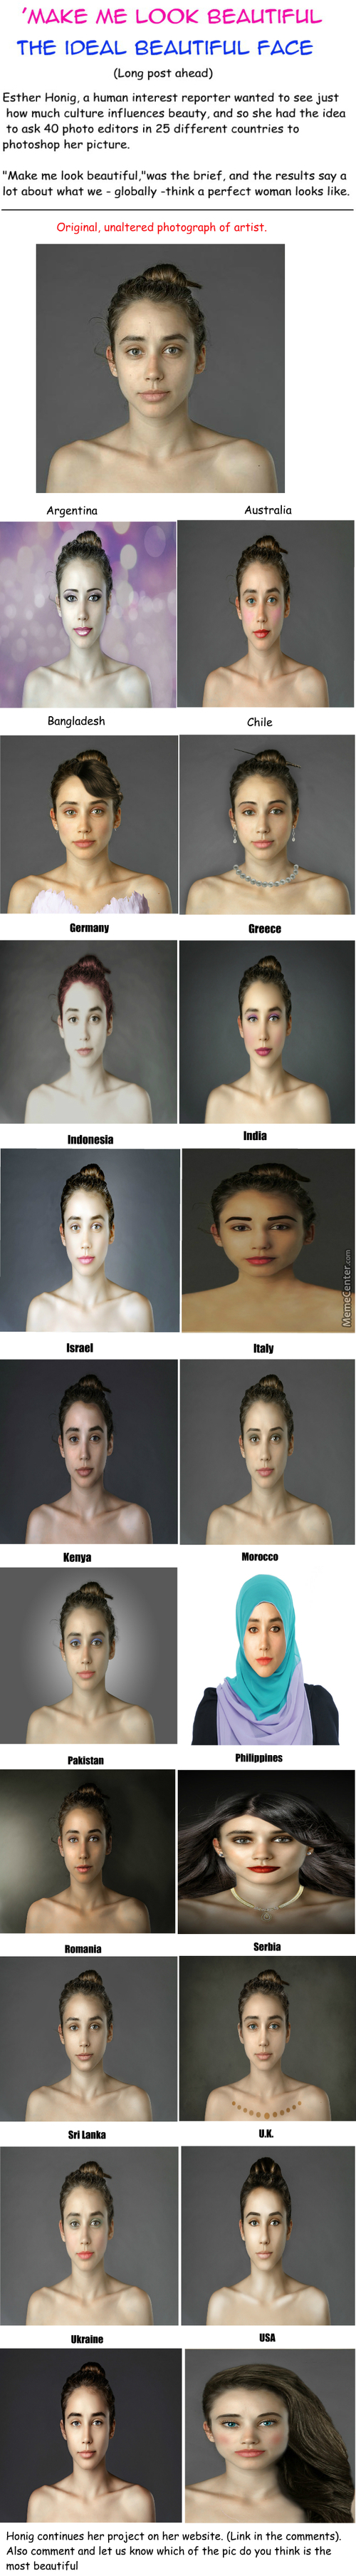 This Woman Had Her Face Photoshopped In Over 25 Countries To Examine Global Beauty Standards